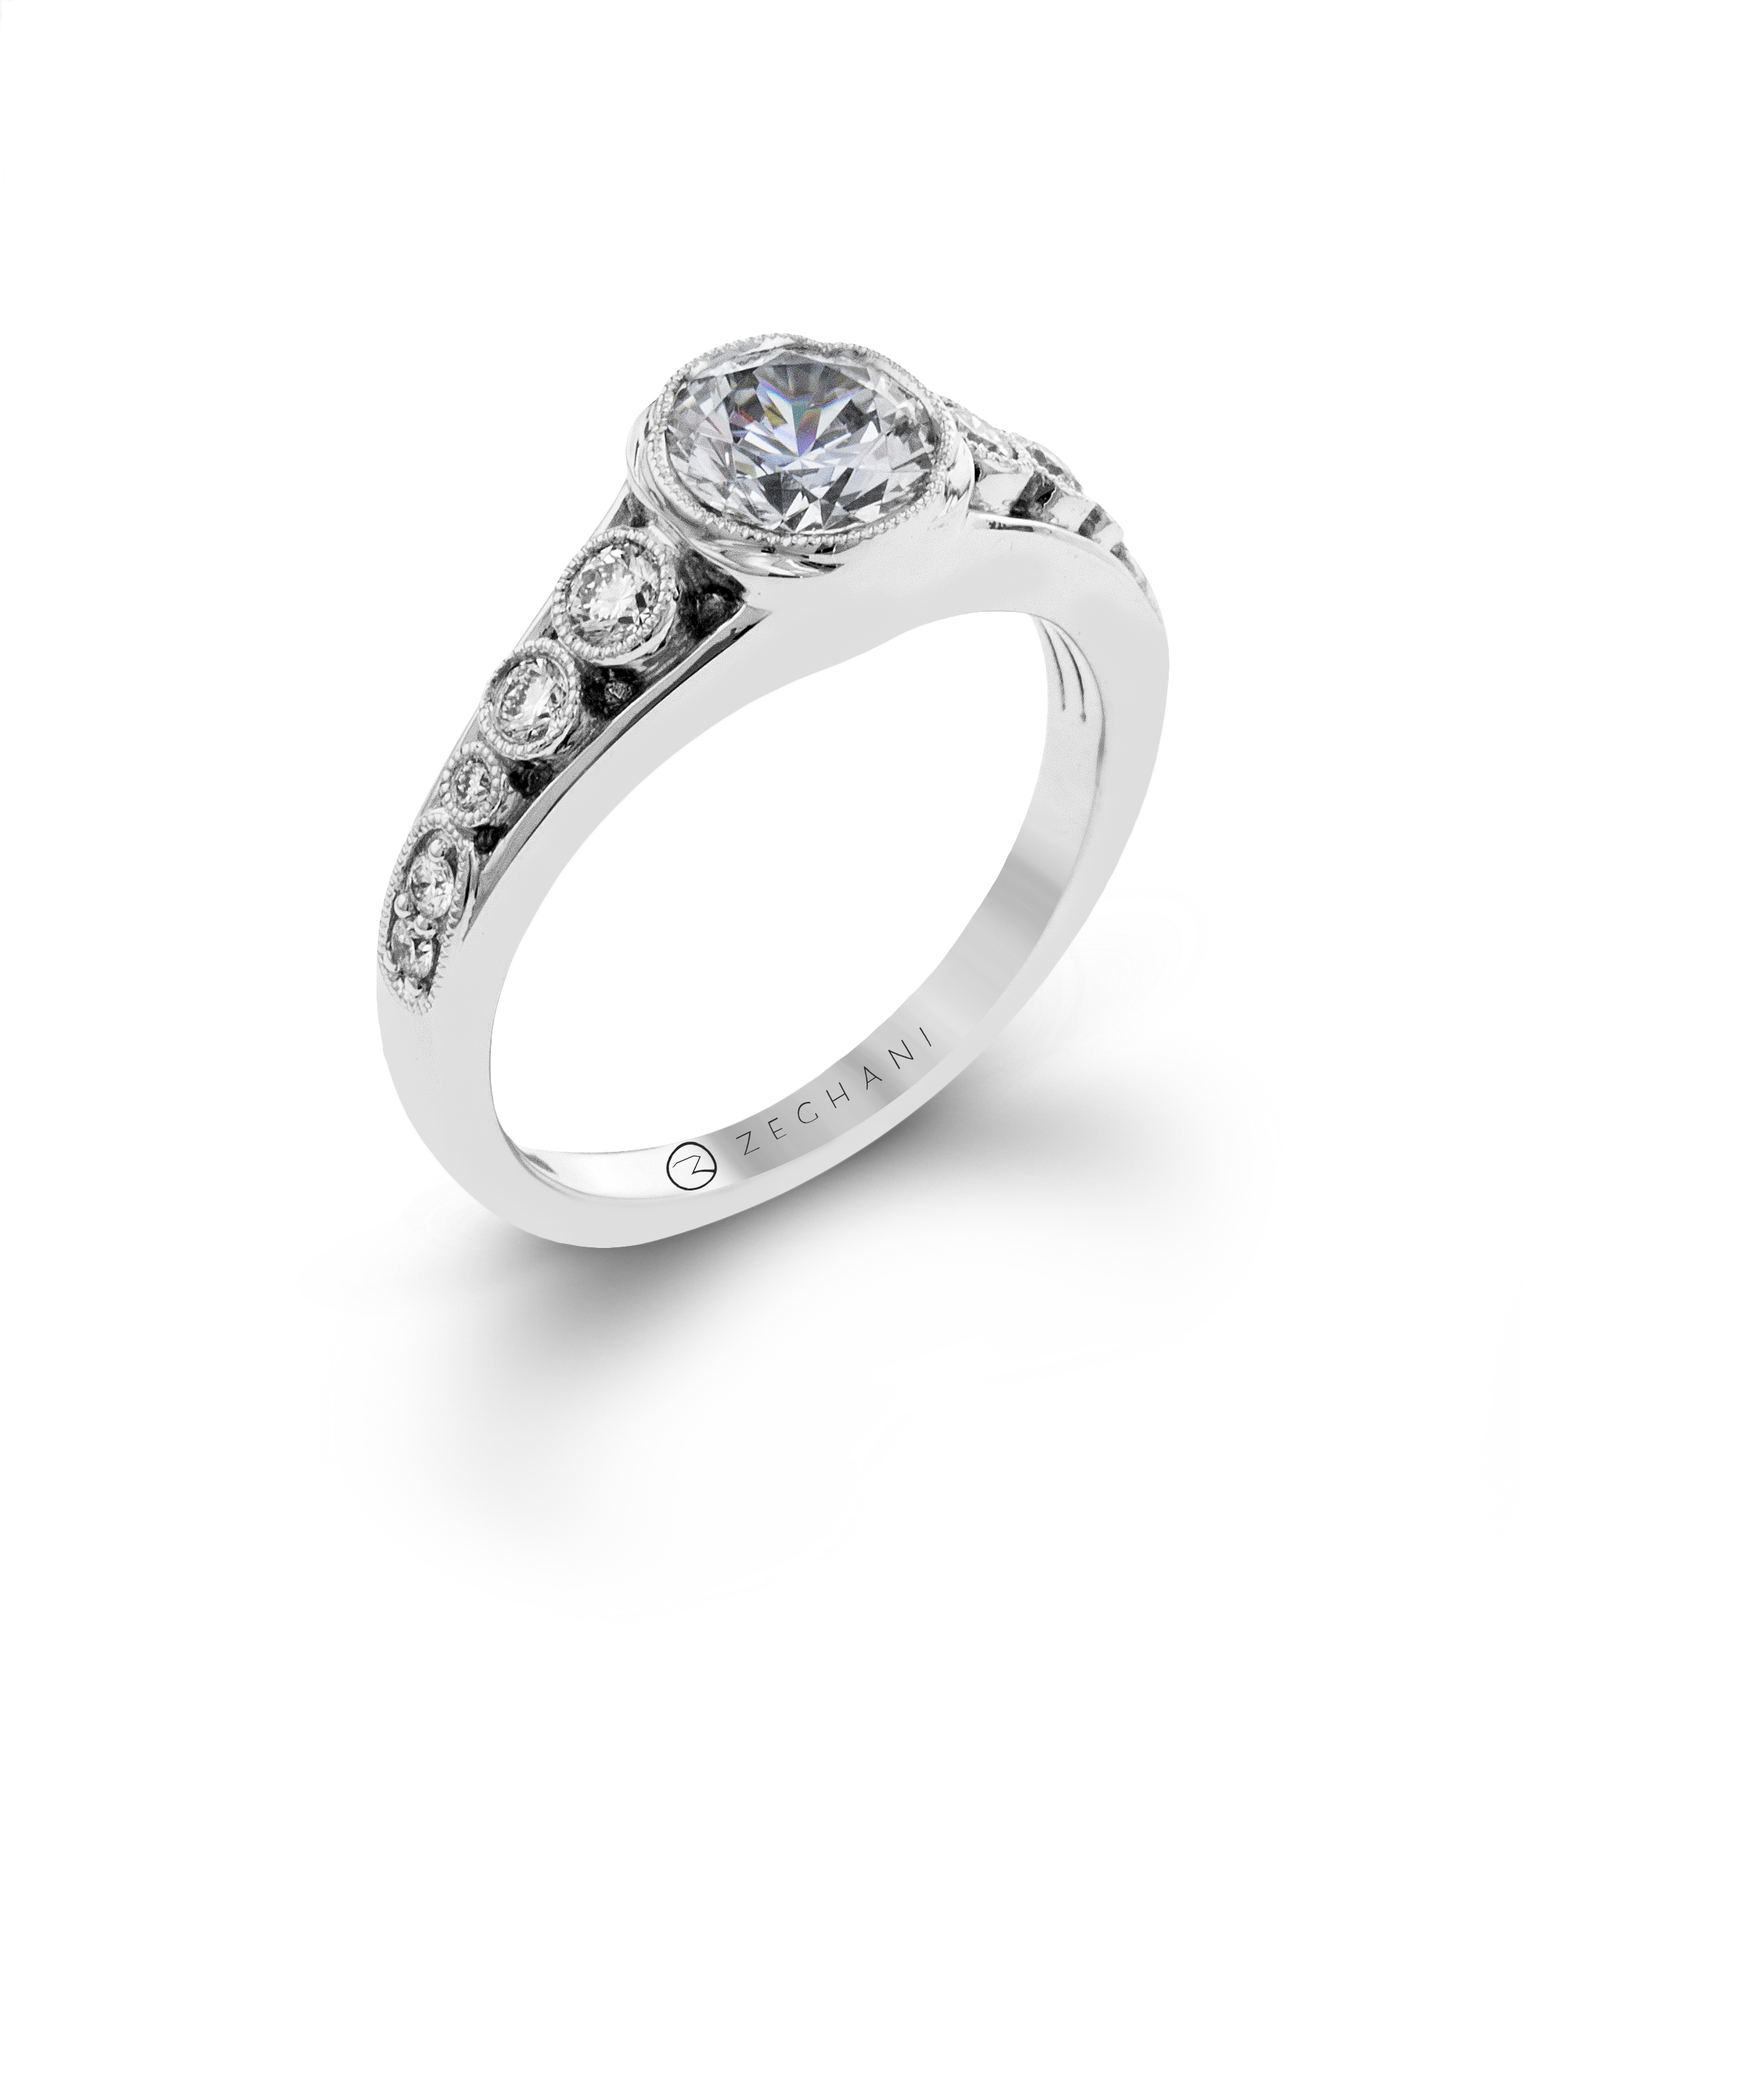 is in was similar and a beauty seen engagement setting this vs to reset pretty i practicality settings it having jewellery though option image given topic have one low of comparison really the think high ring